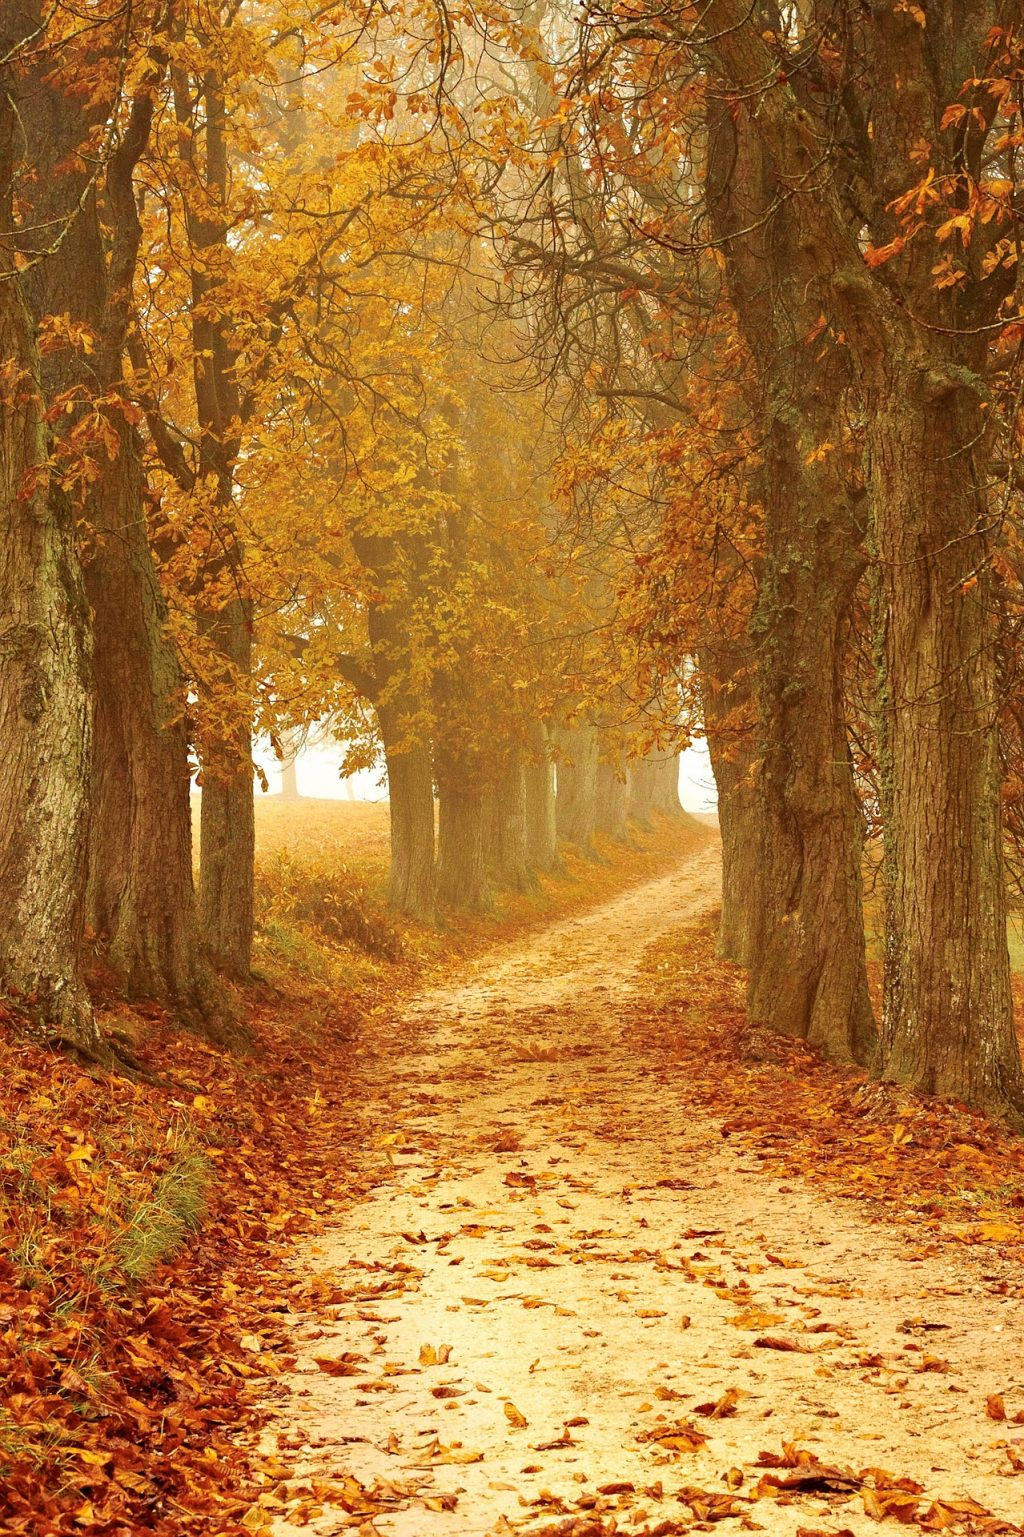 Autumn_photographytips